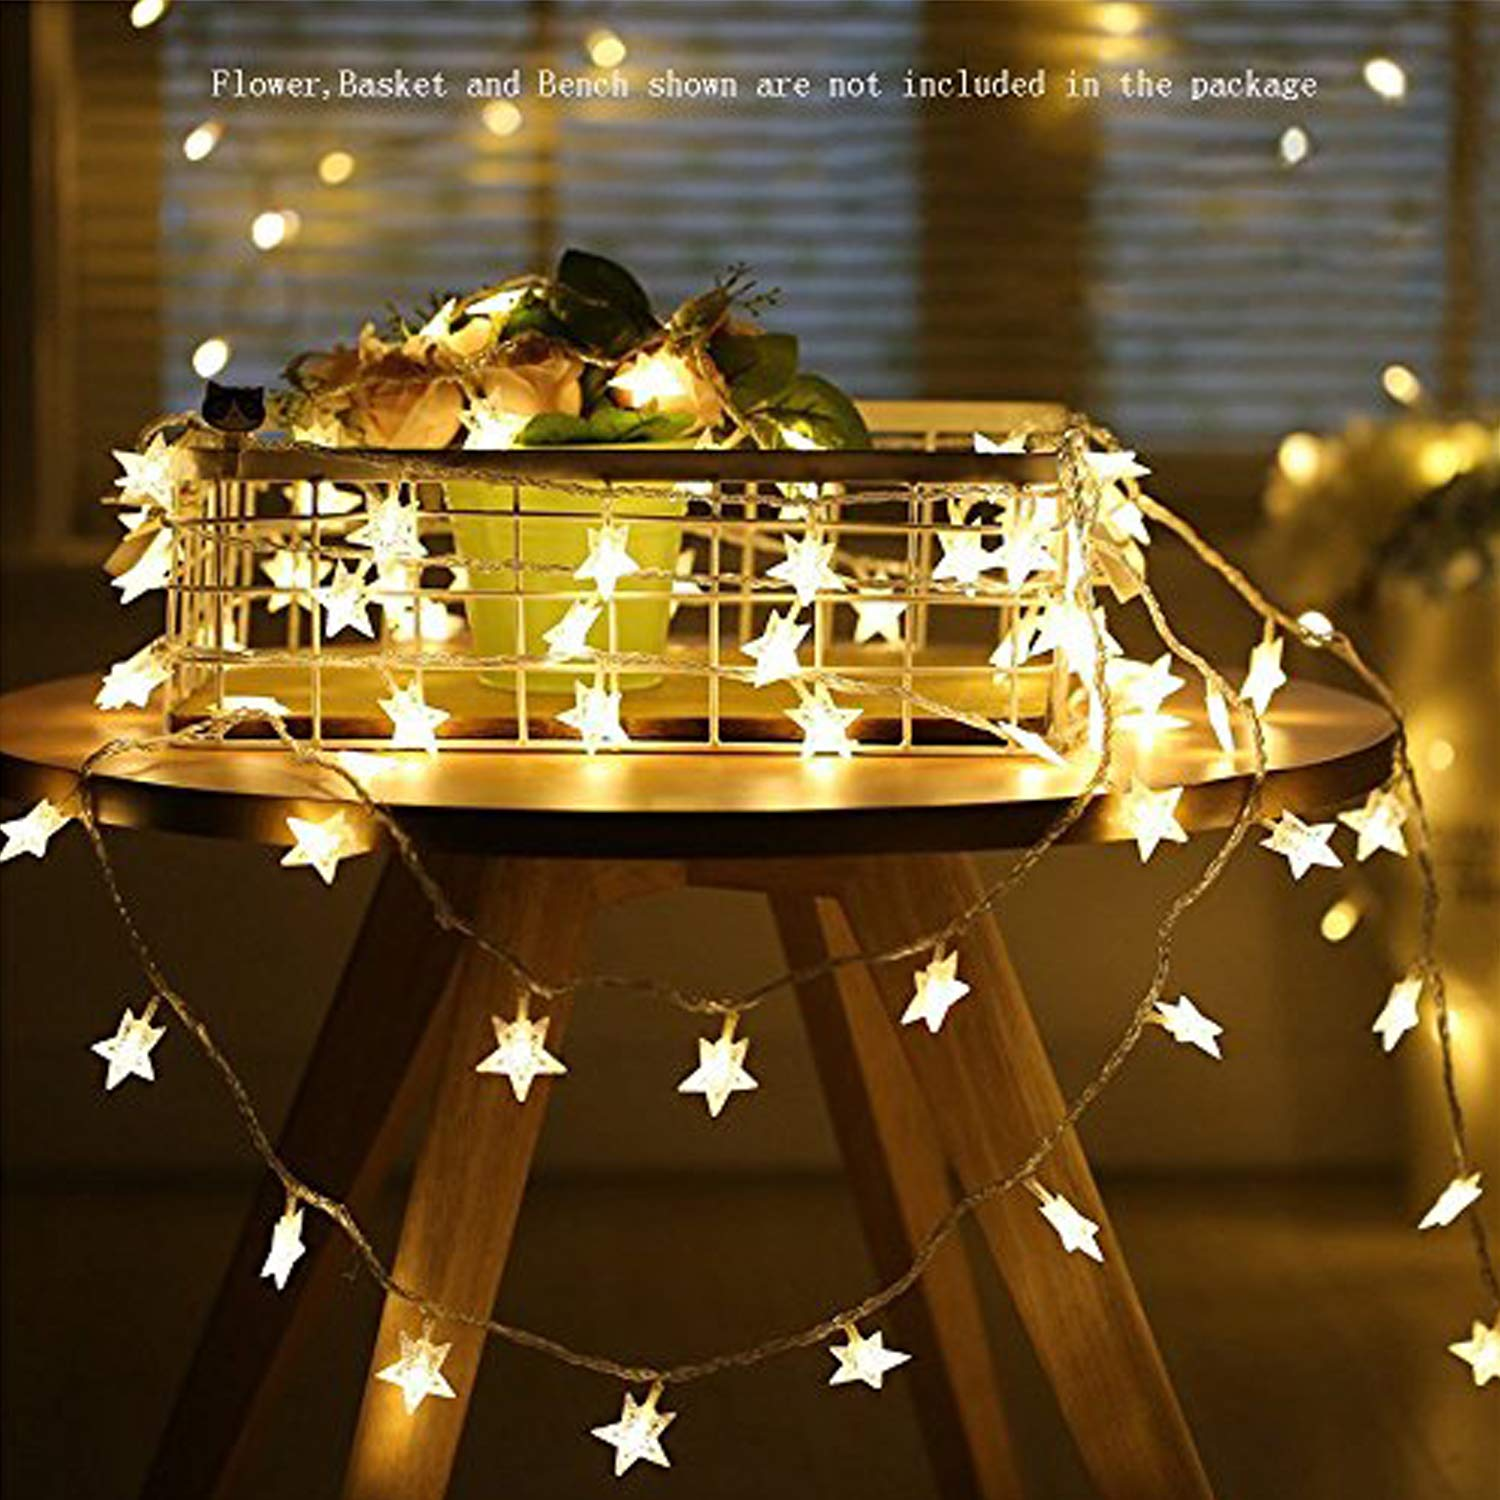 info for 86ace 3f339 Star String Lights,Battery Operated LED Twinkle Lights 50pcs LED Indoor  Fairy Lights Warm White for Patio Wedding Bedroom Princess Castle Play  Tents ...